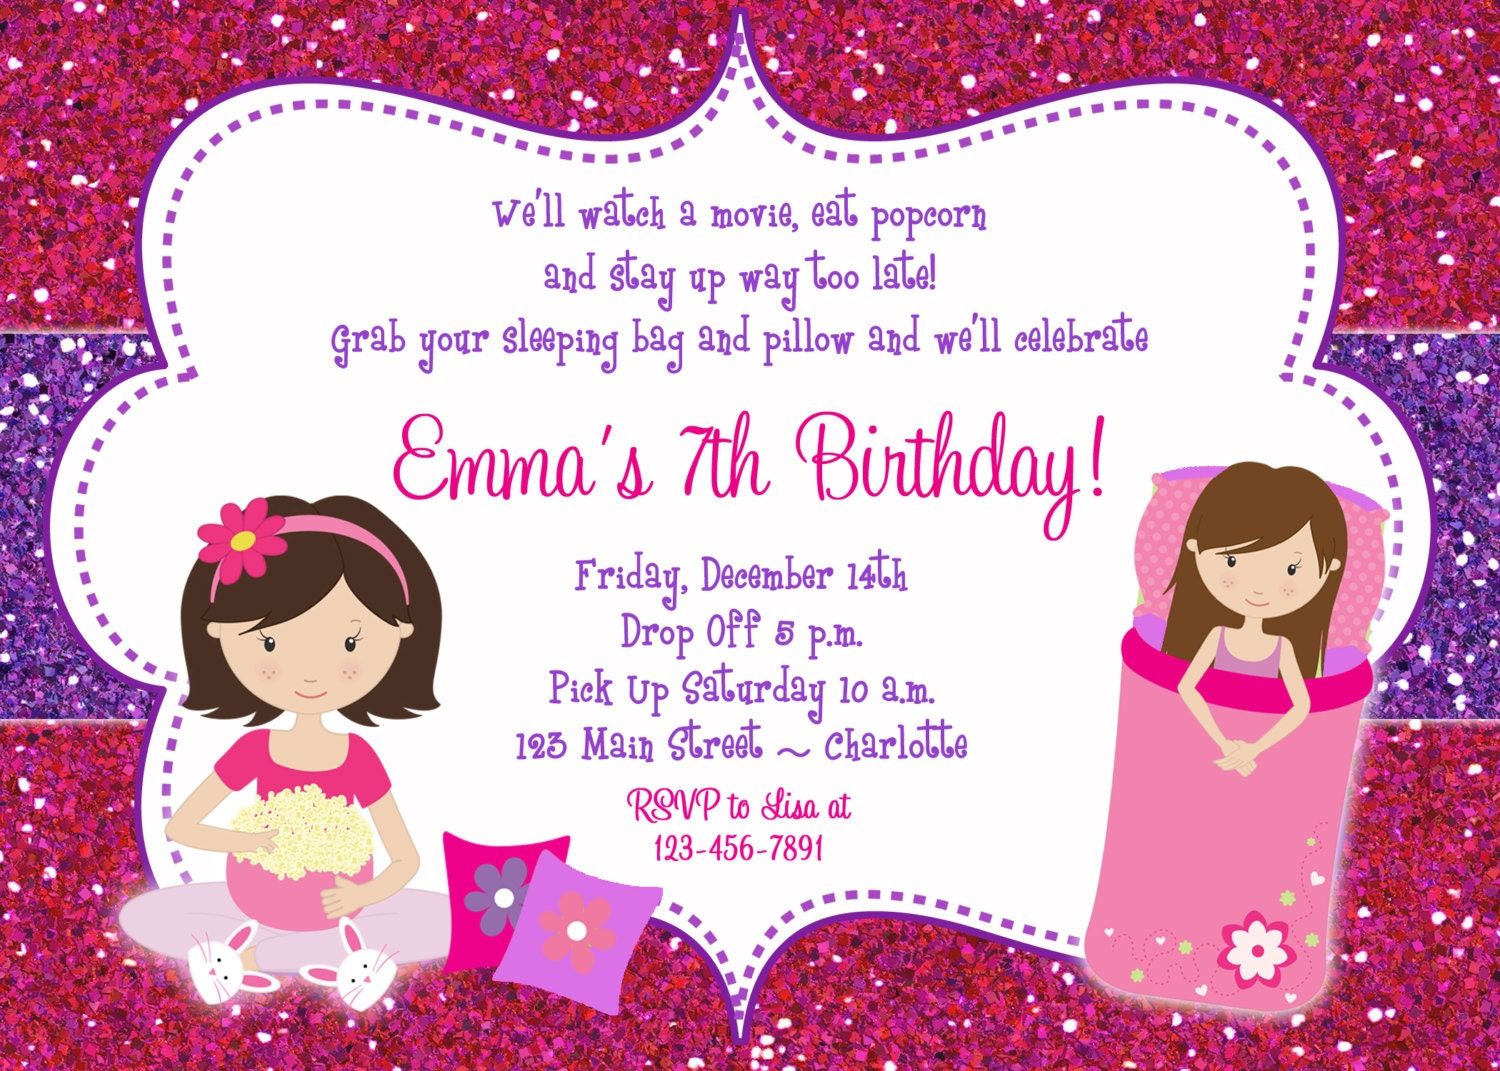 slumber party birthday invitation pajama party sleepover